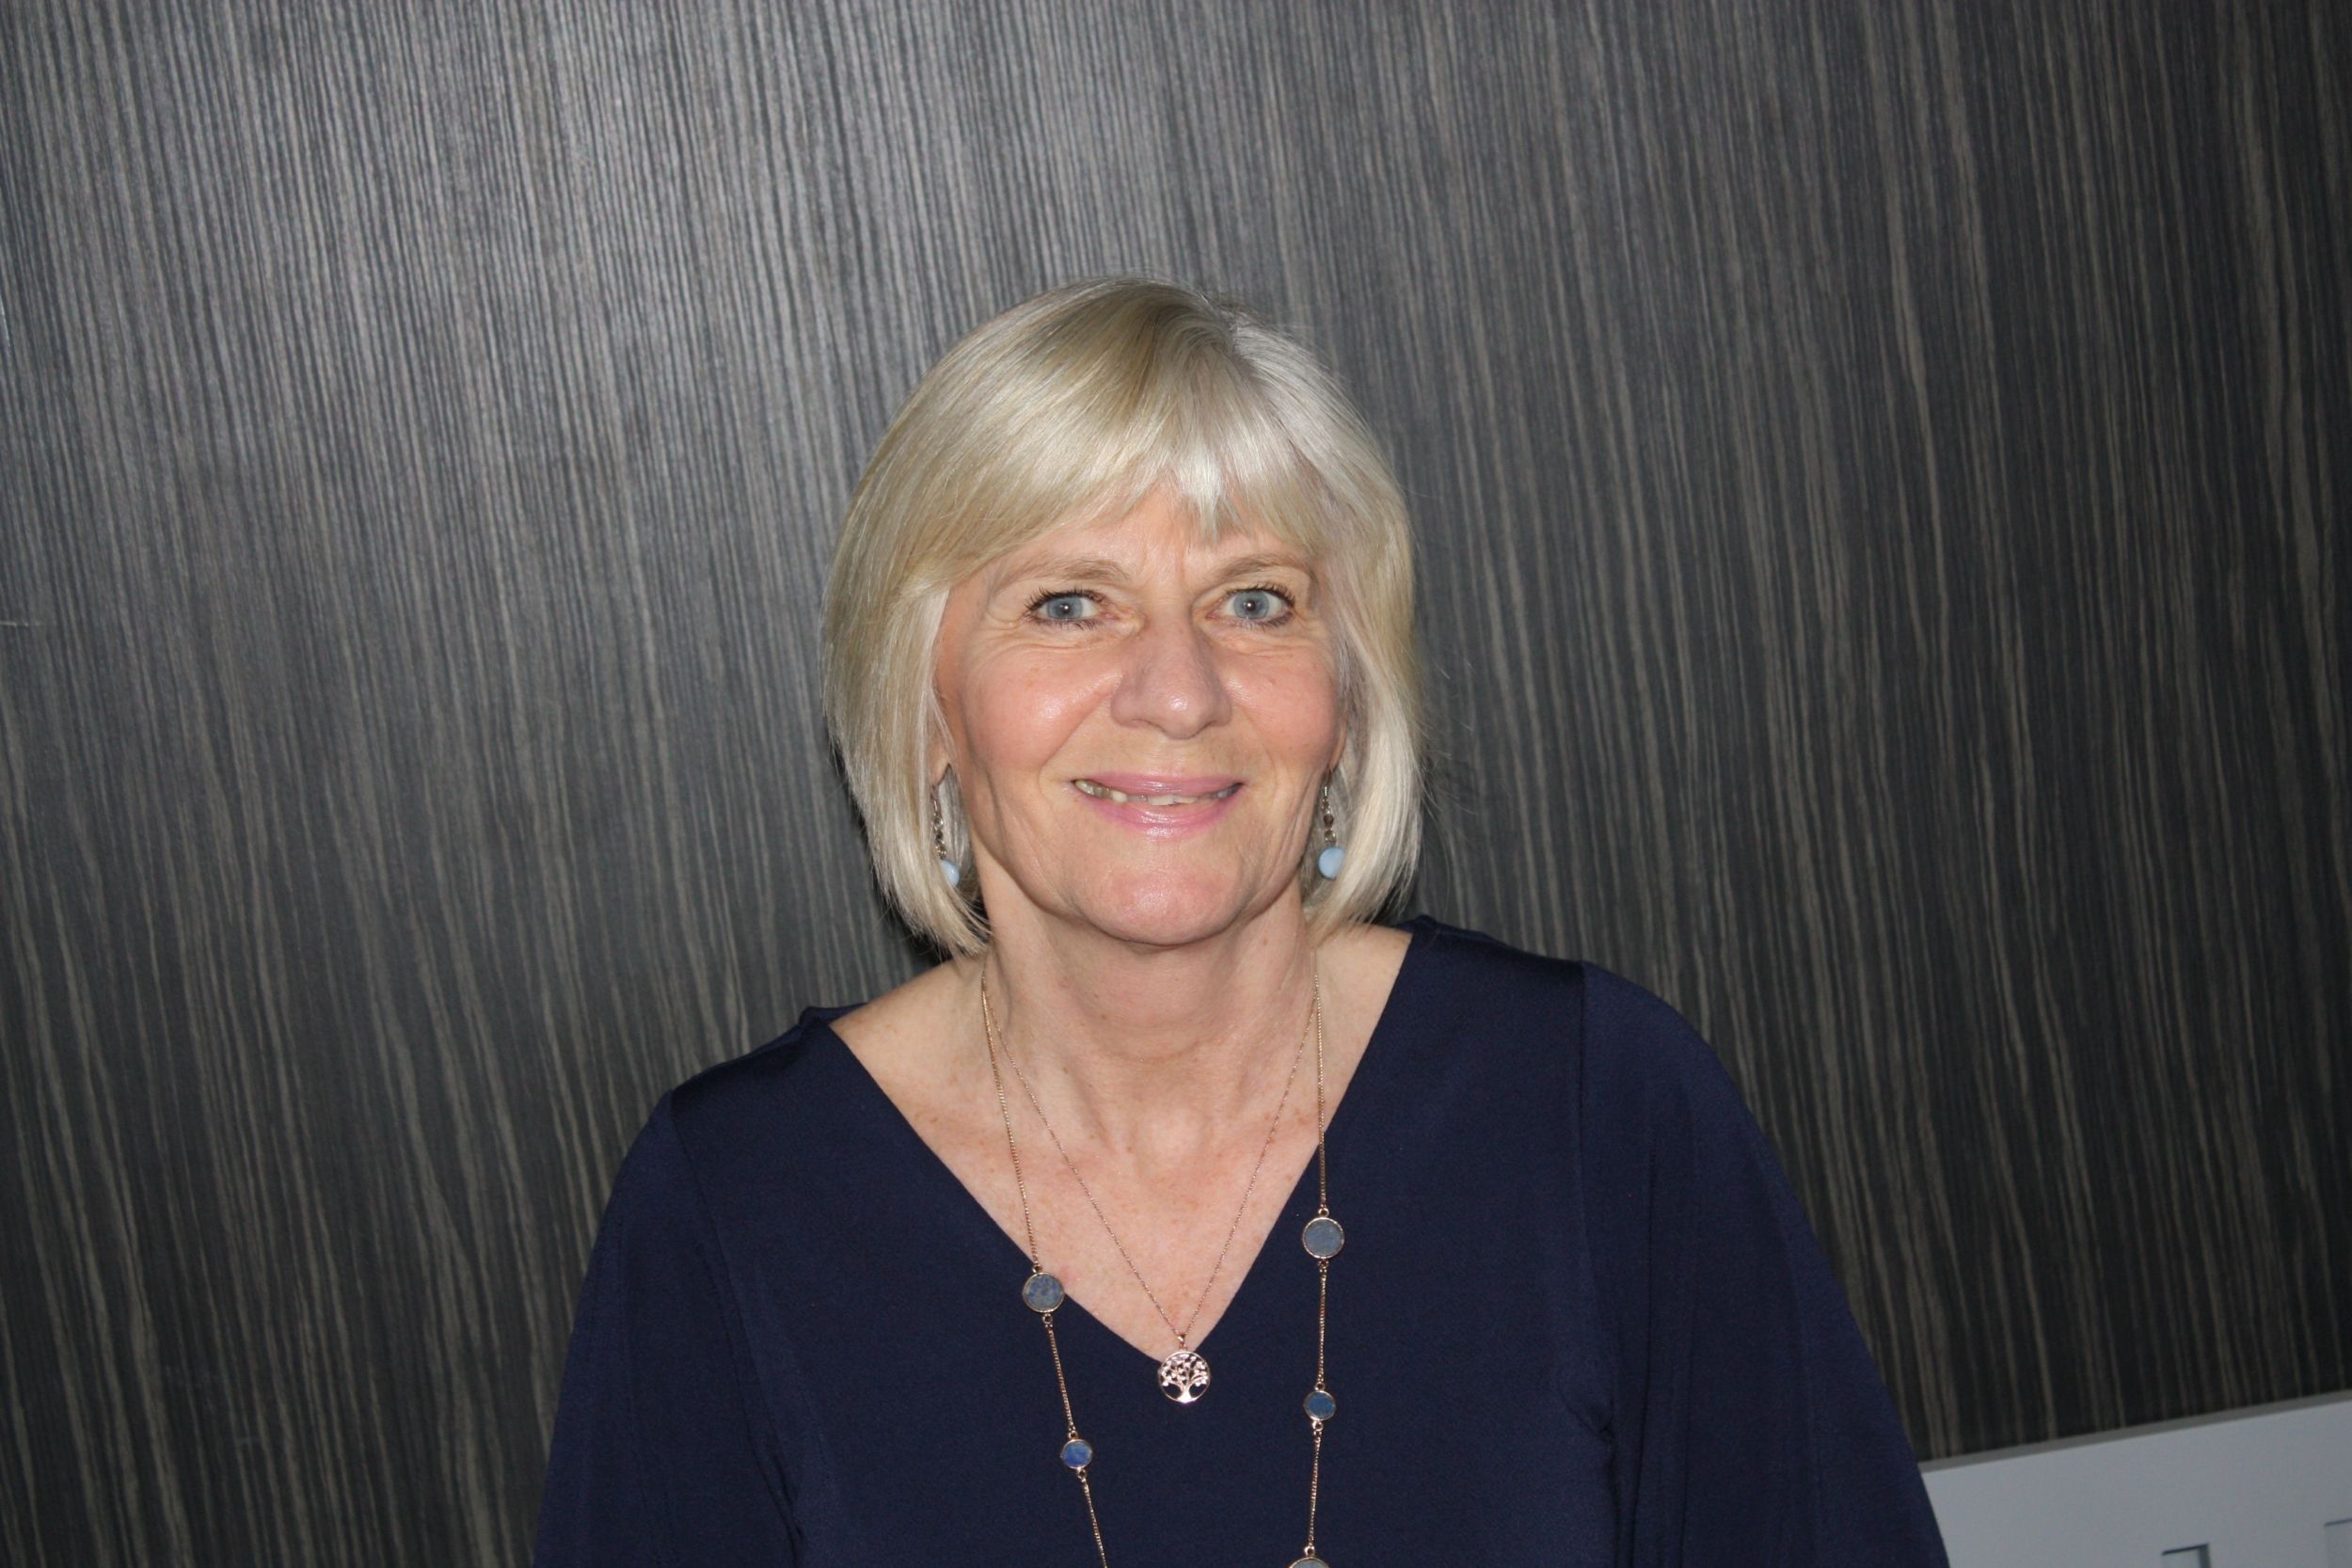 Julie Bottomley - Events Administrator at Badgemore Park in Henley-on-Thames